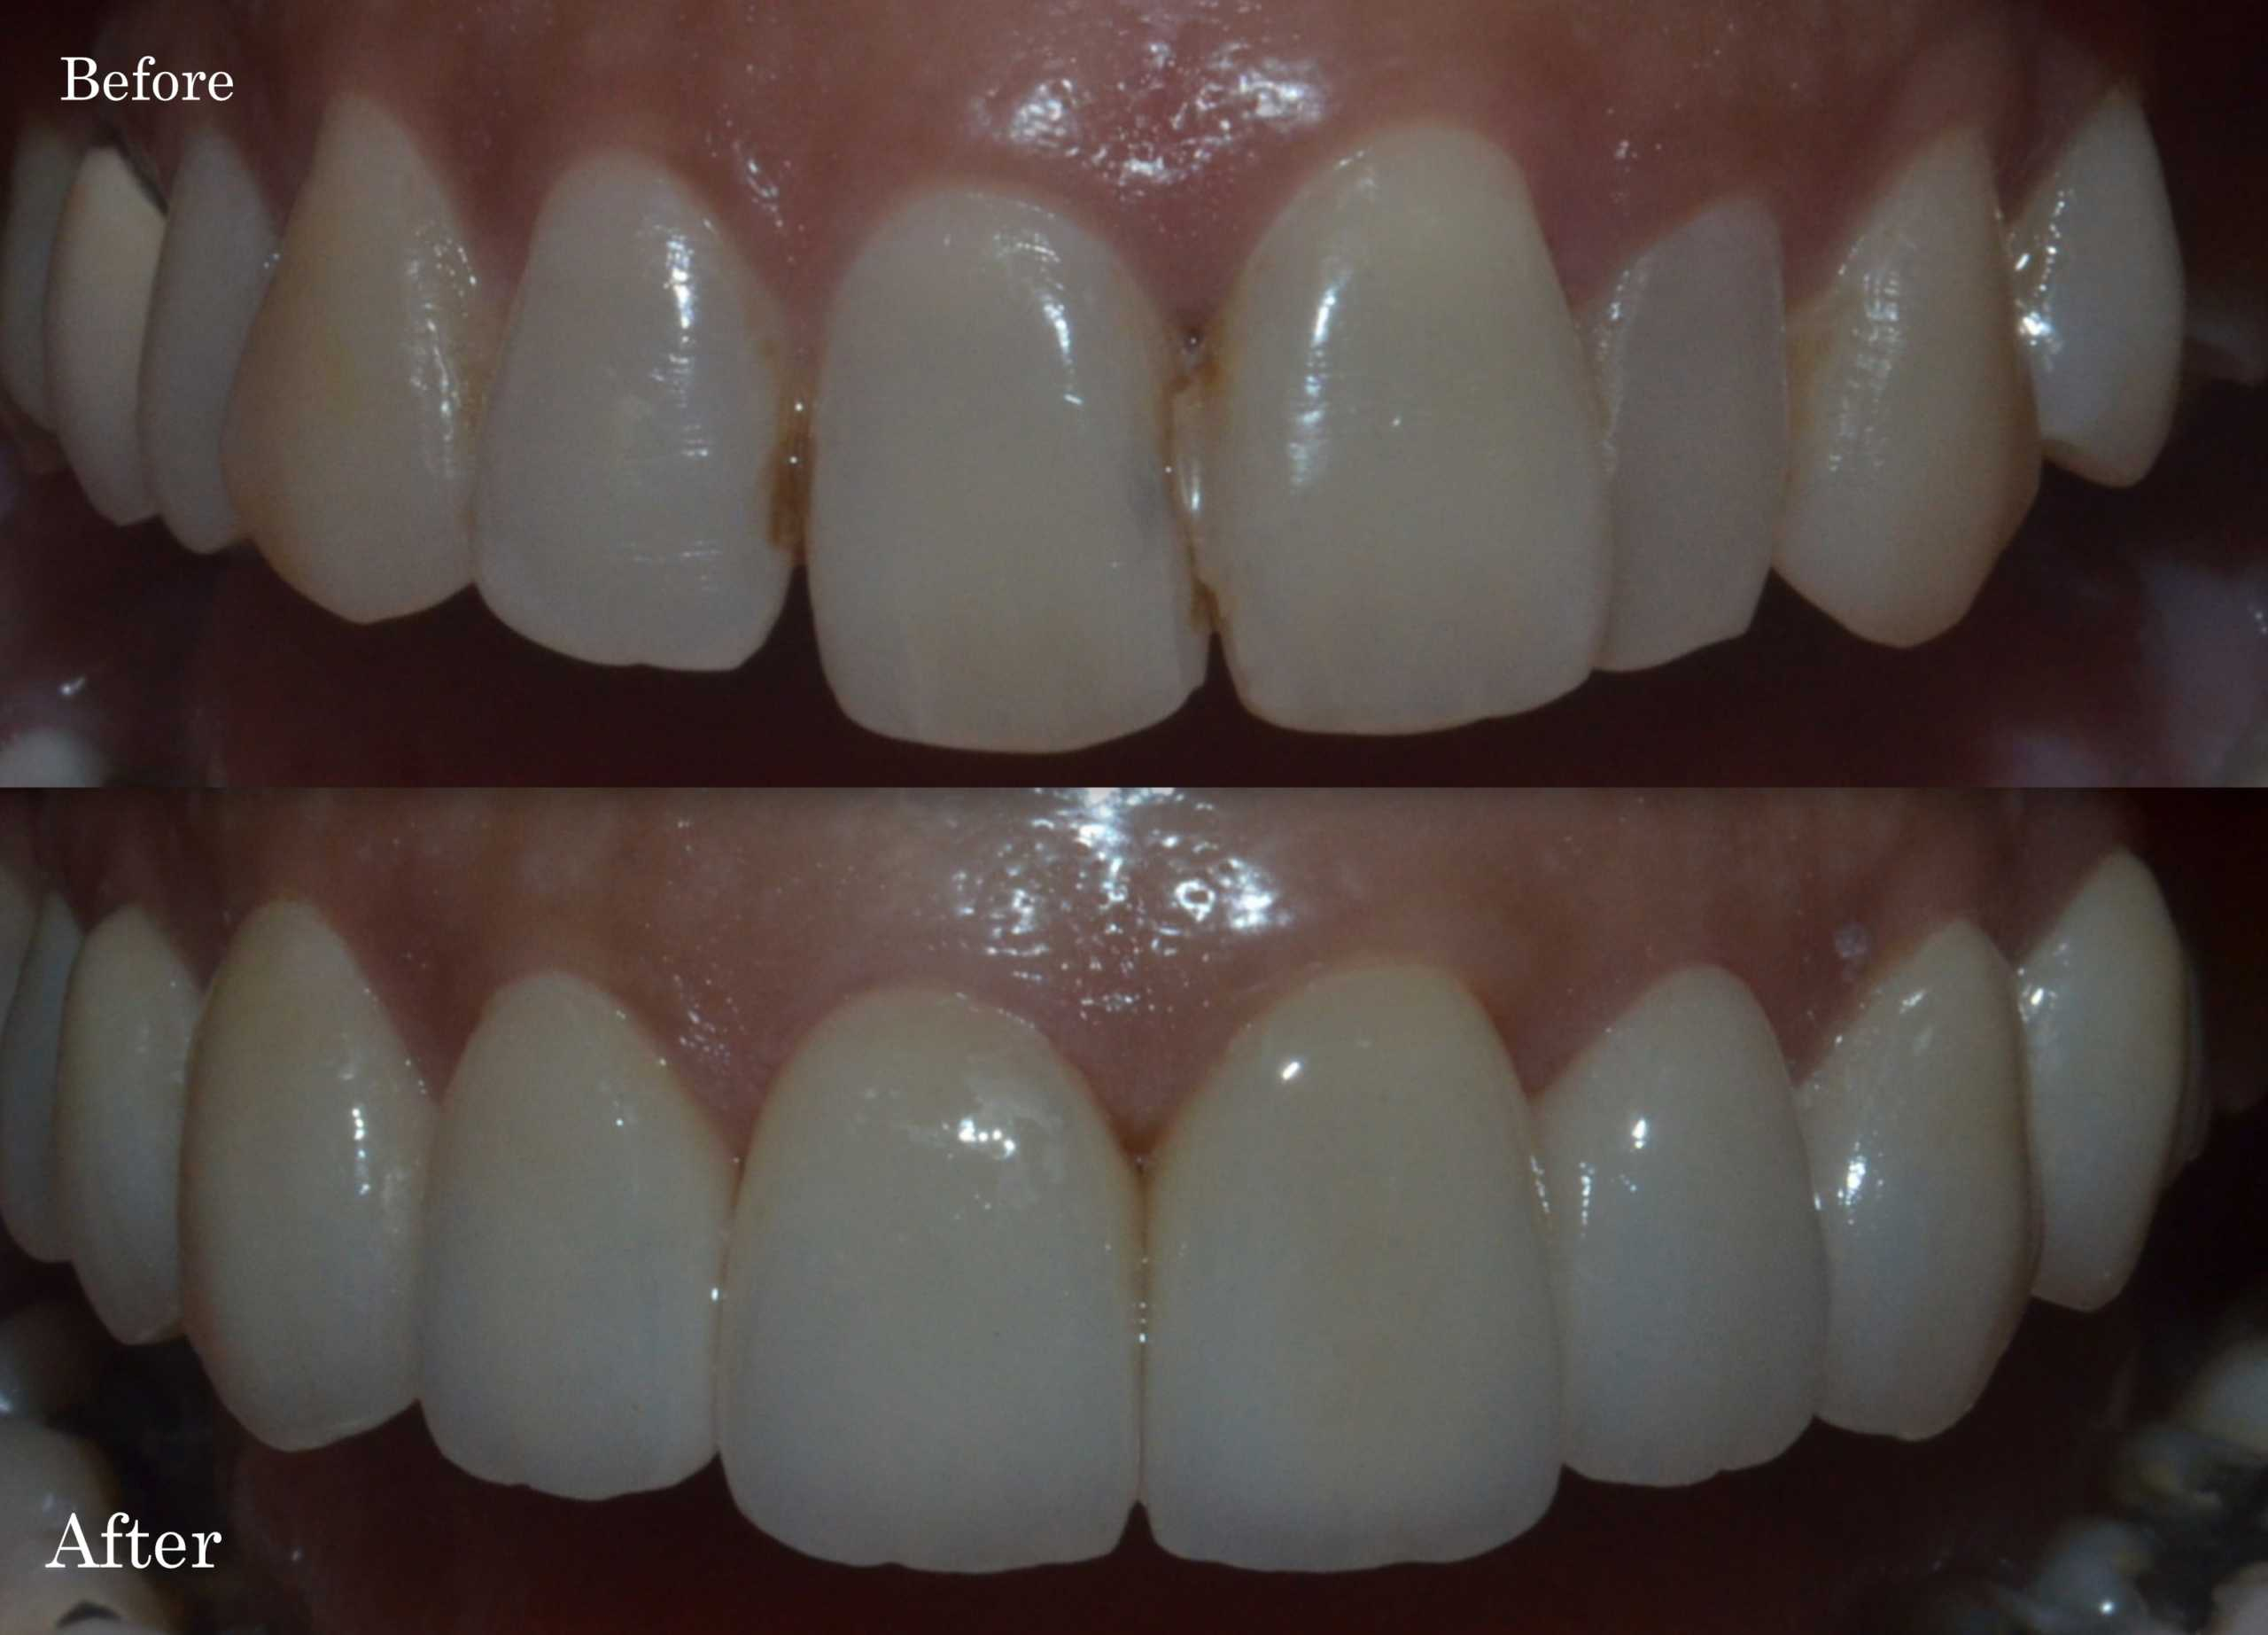 Porcelain veneers to align and make teeth cavity free